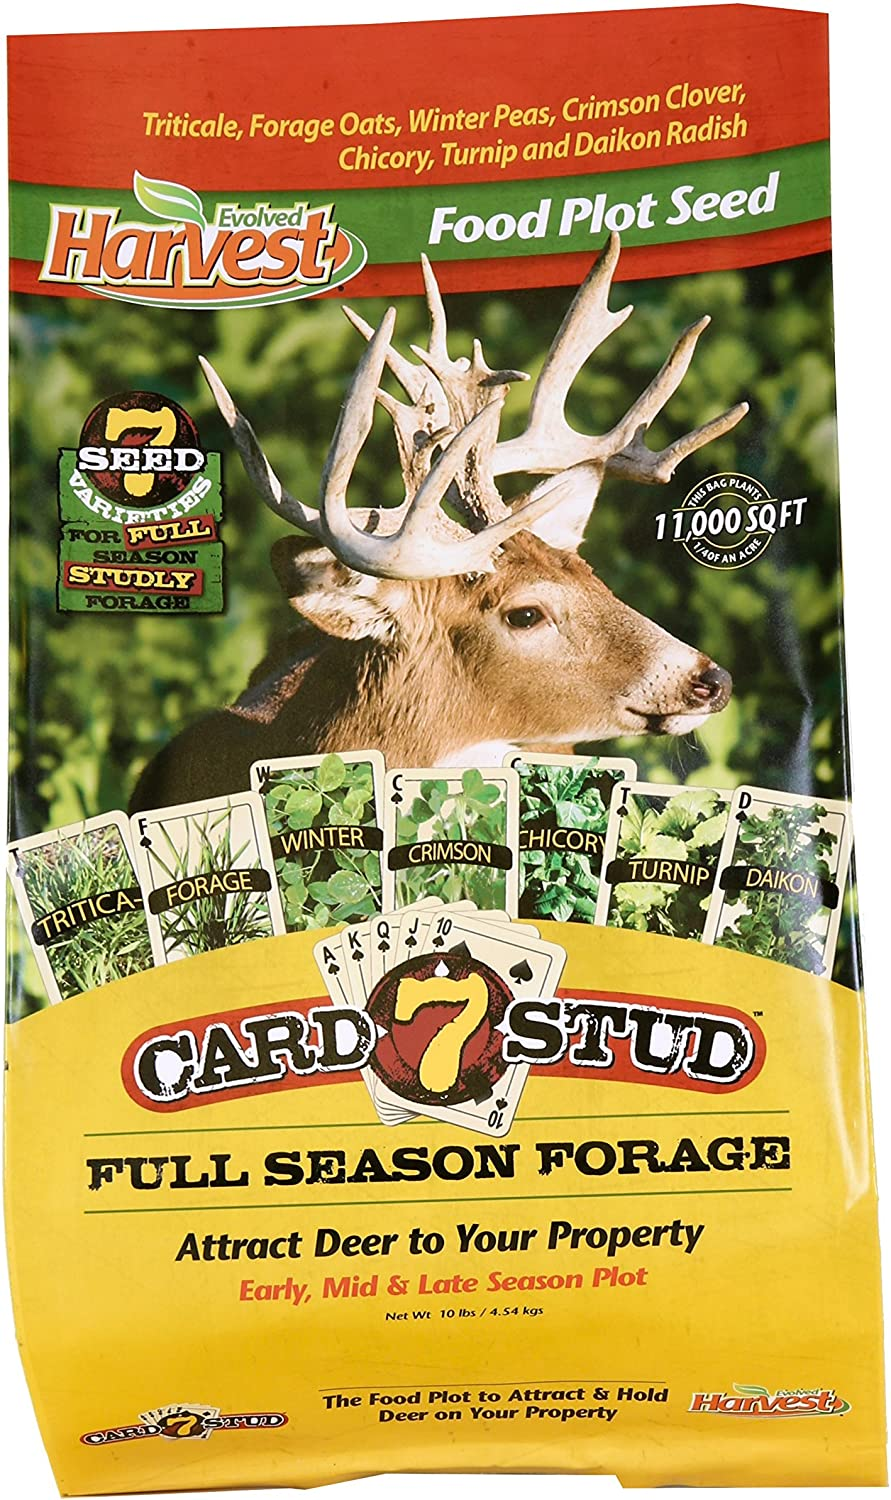 Evolved Harvest 5 Card Draw 10 Lb Bag